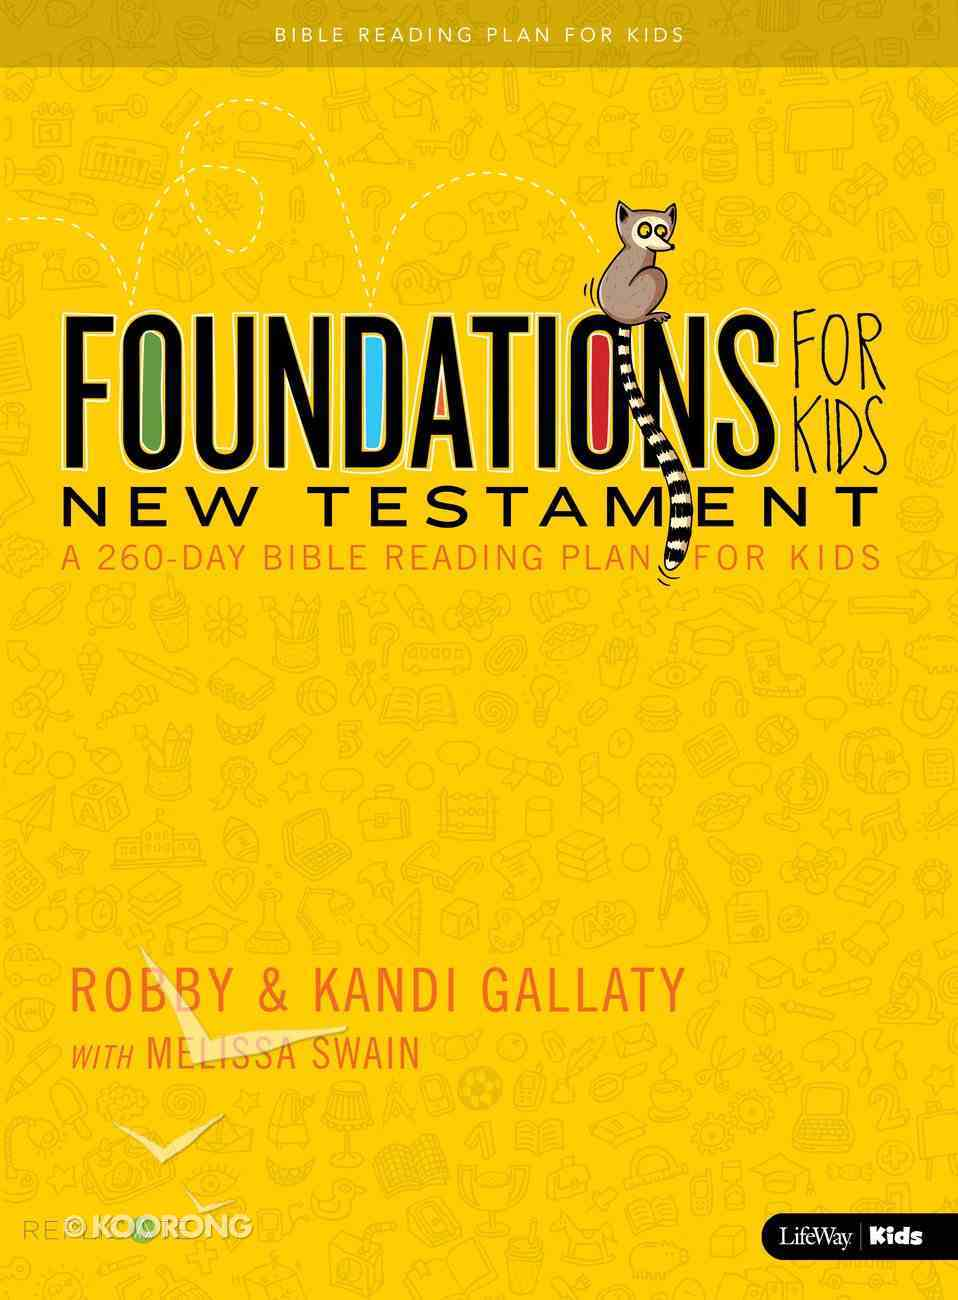 Foundations For Kids - New Testament: A 260-Day Bible Reading Plan For Kids Paperback